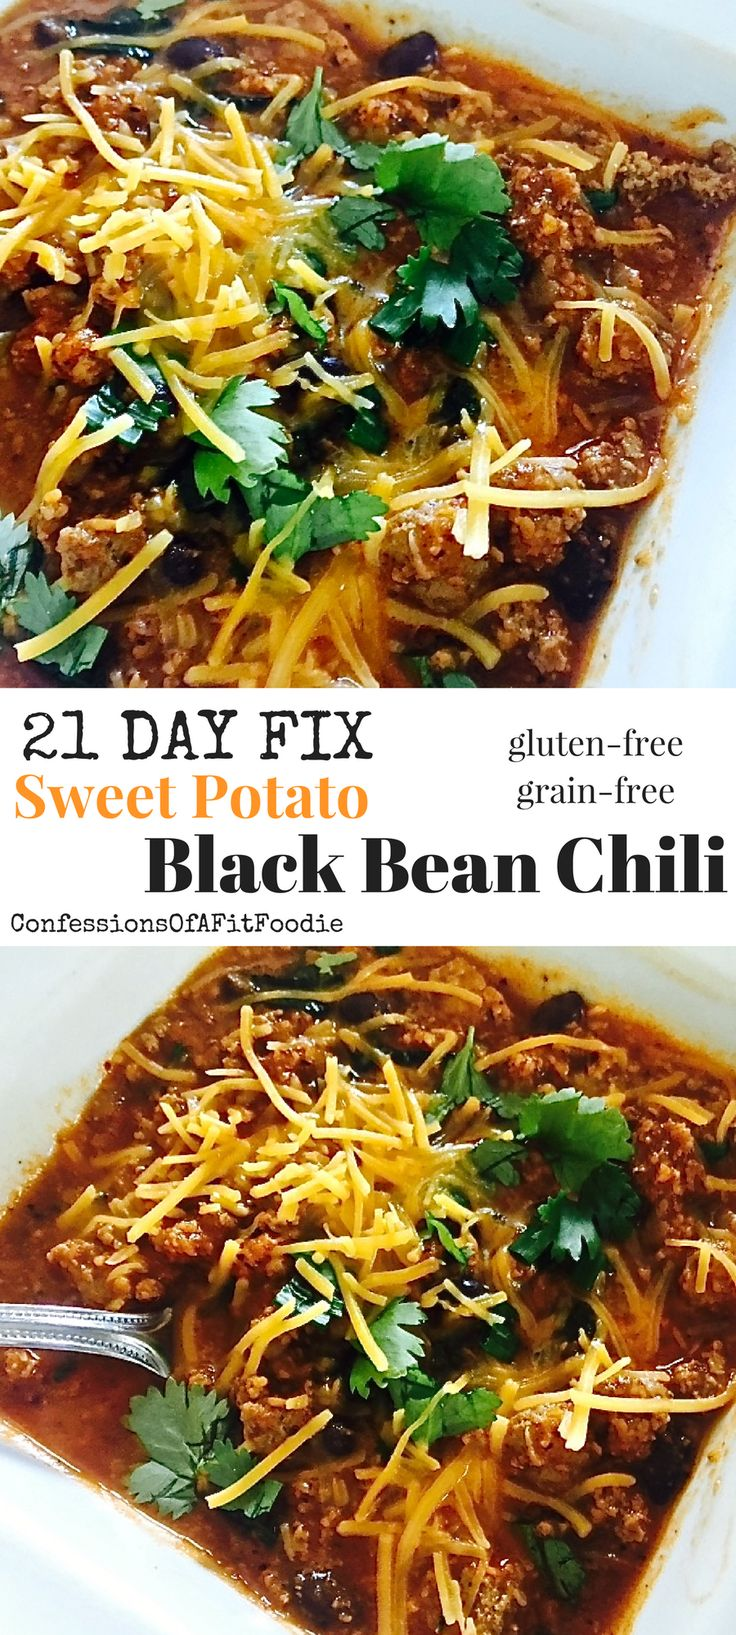 21 Day Fix Sweet Potato and Black Bean Chili